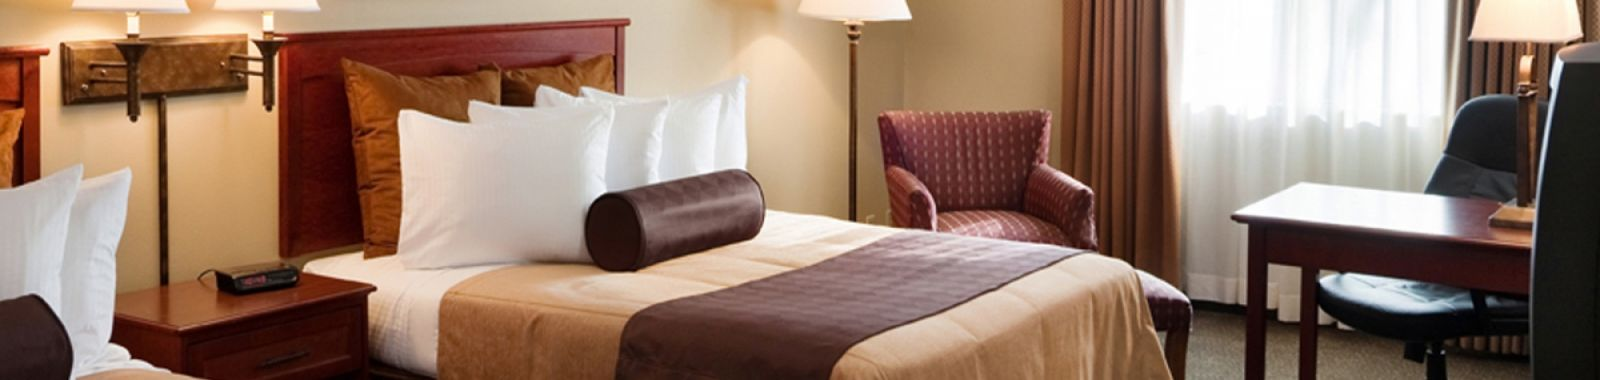 Chicago Club Inn Suites Westmont Illinois